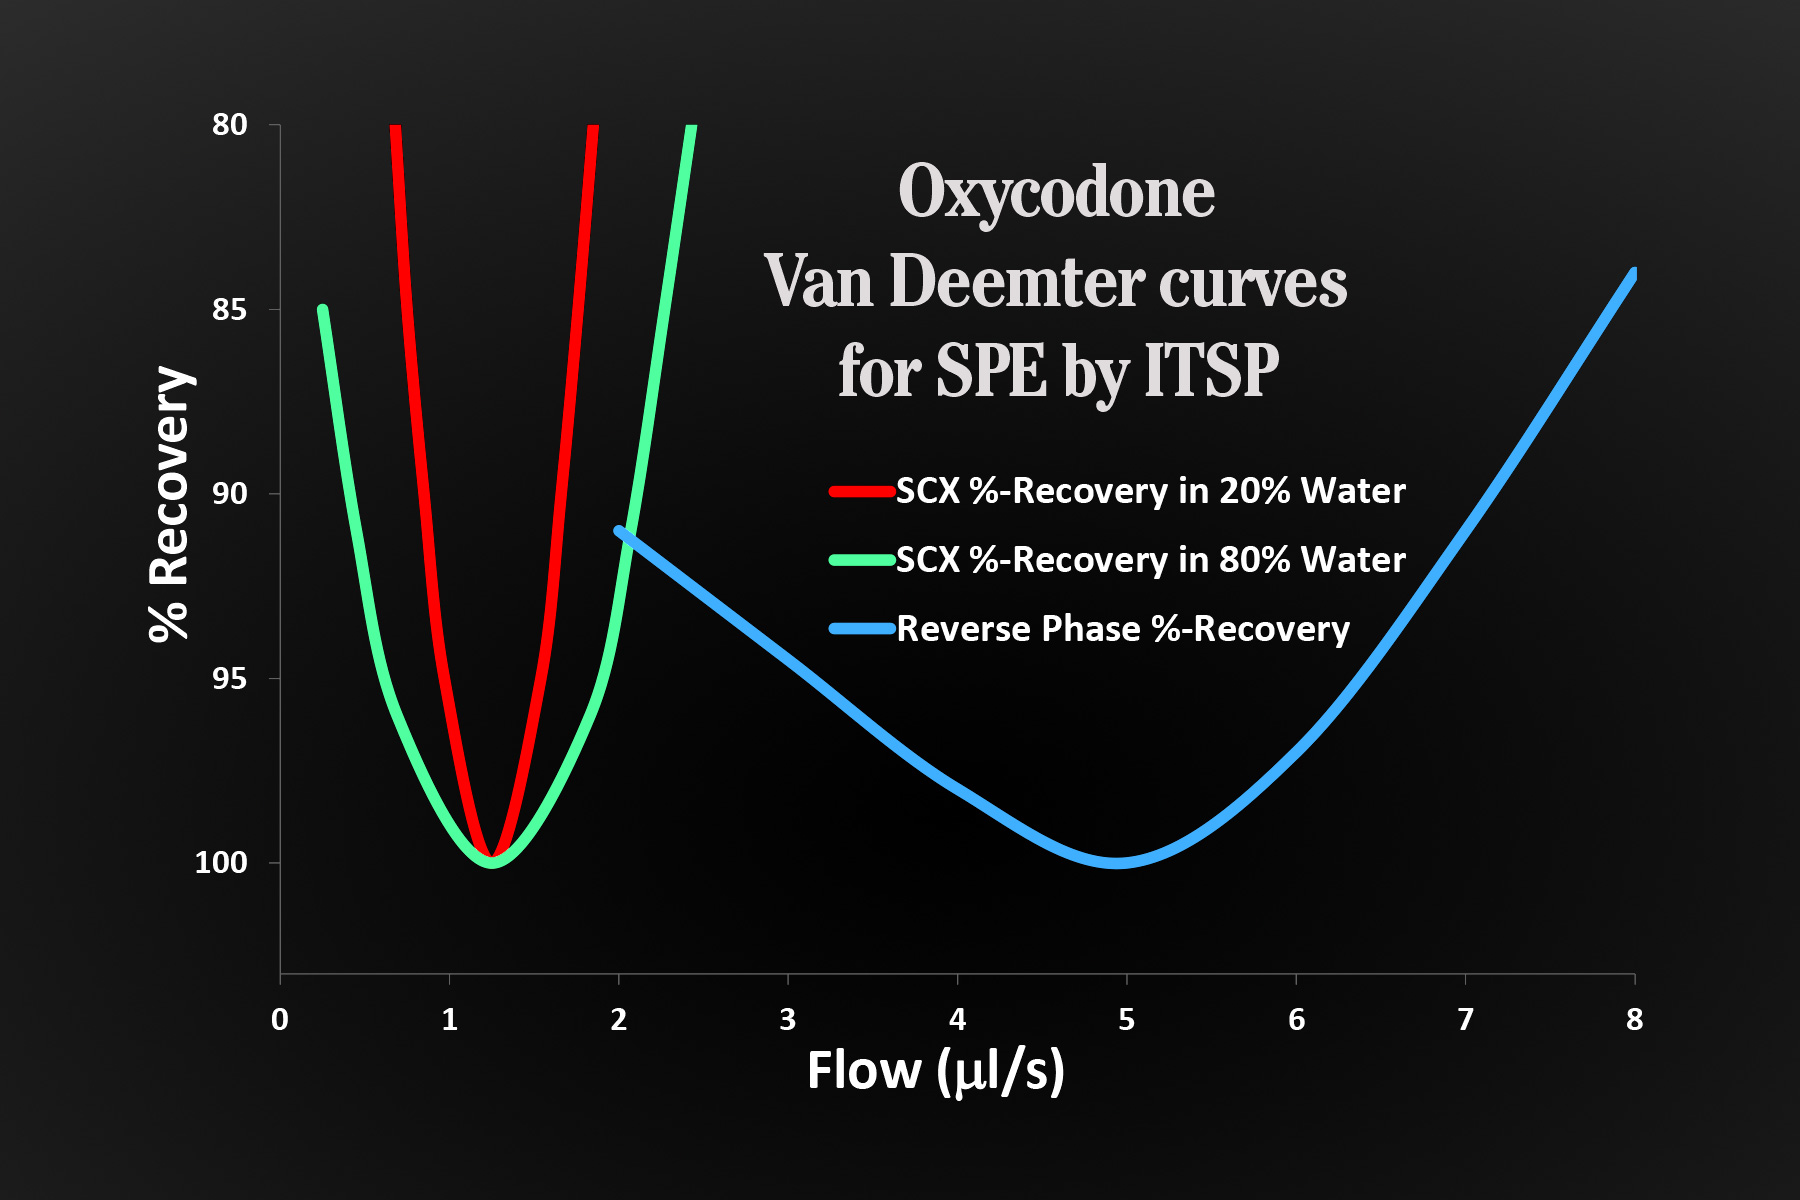 Oxycodone Van Deemter curves for SPE by ITSP